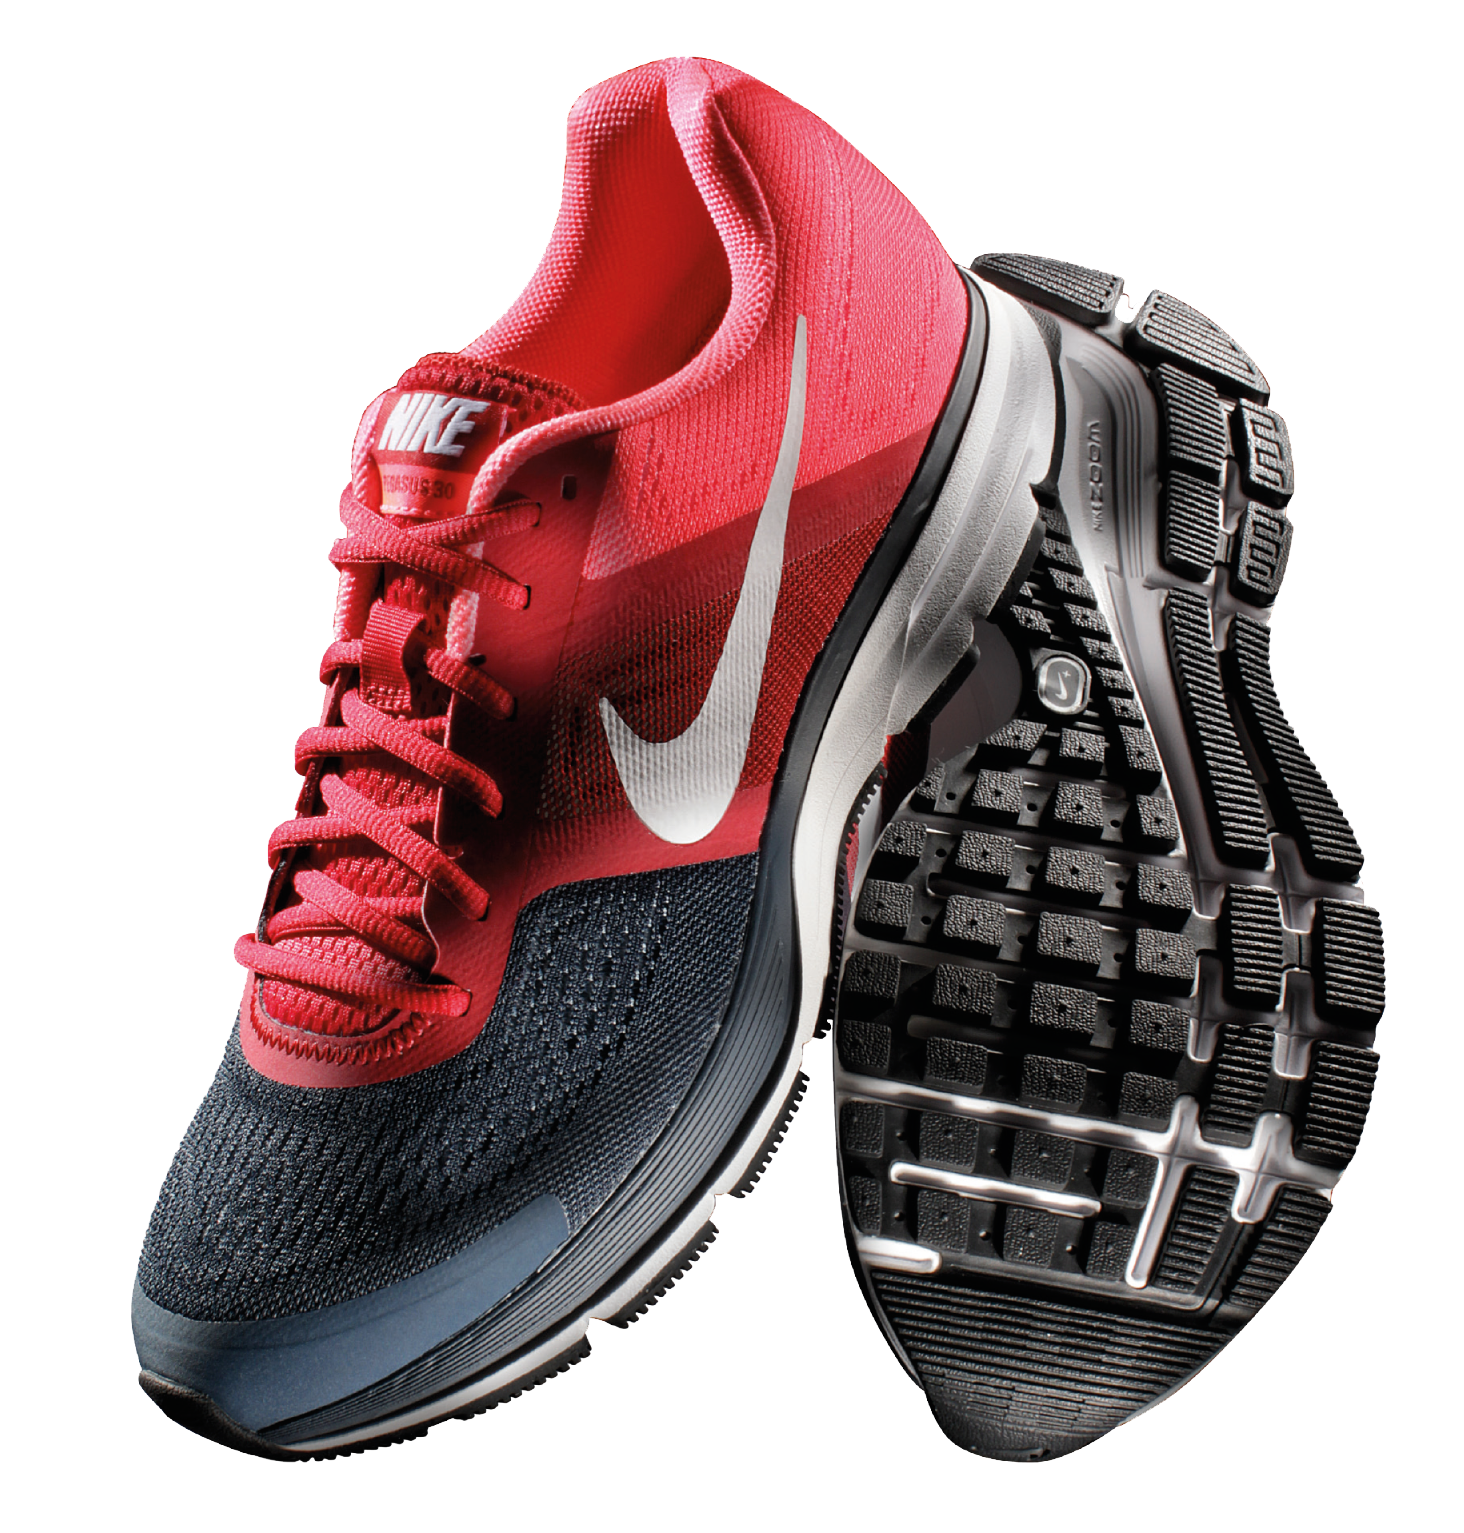 Nike Shoes Transparent PNG Image